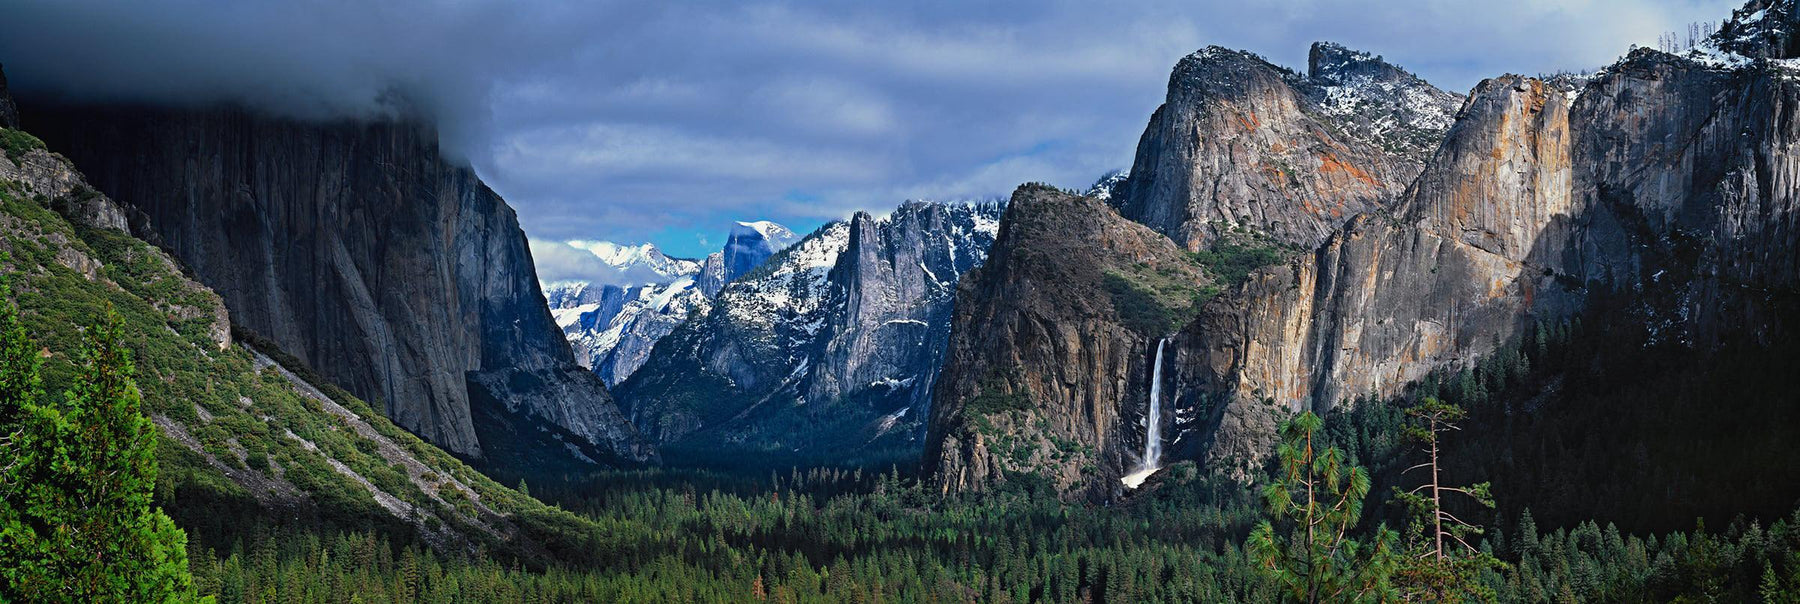 Yosemite Valley covered by clouds with the waterfall and snow covered mountains in the background